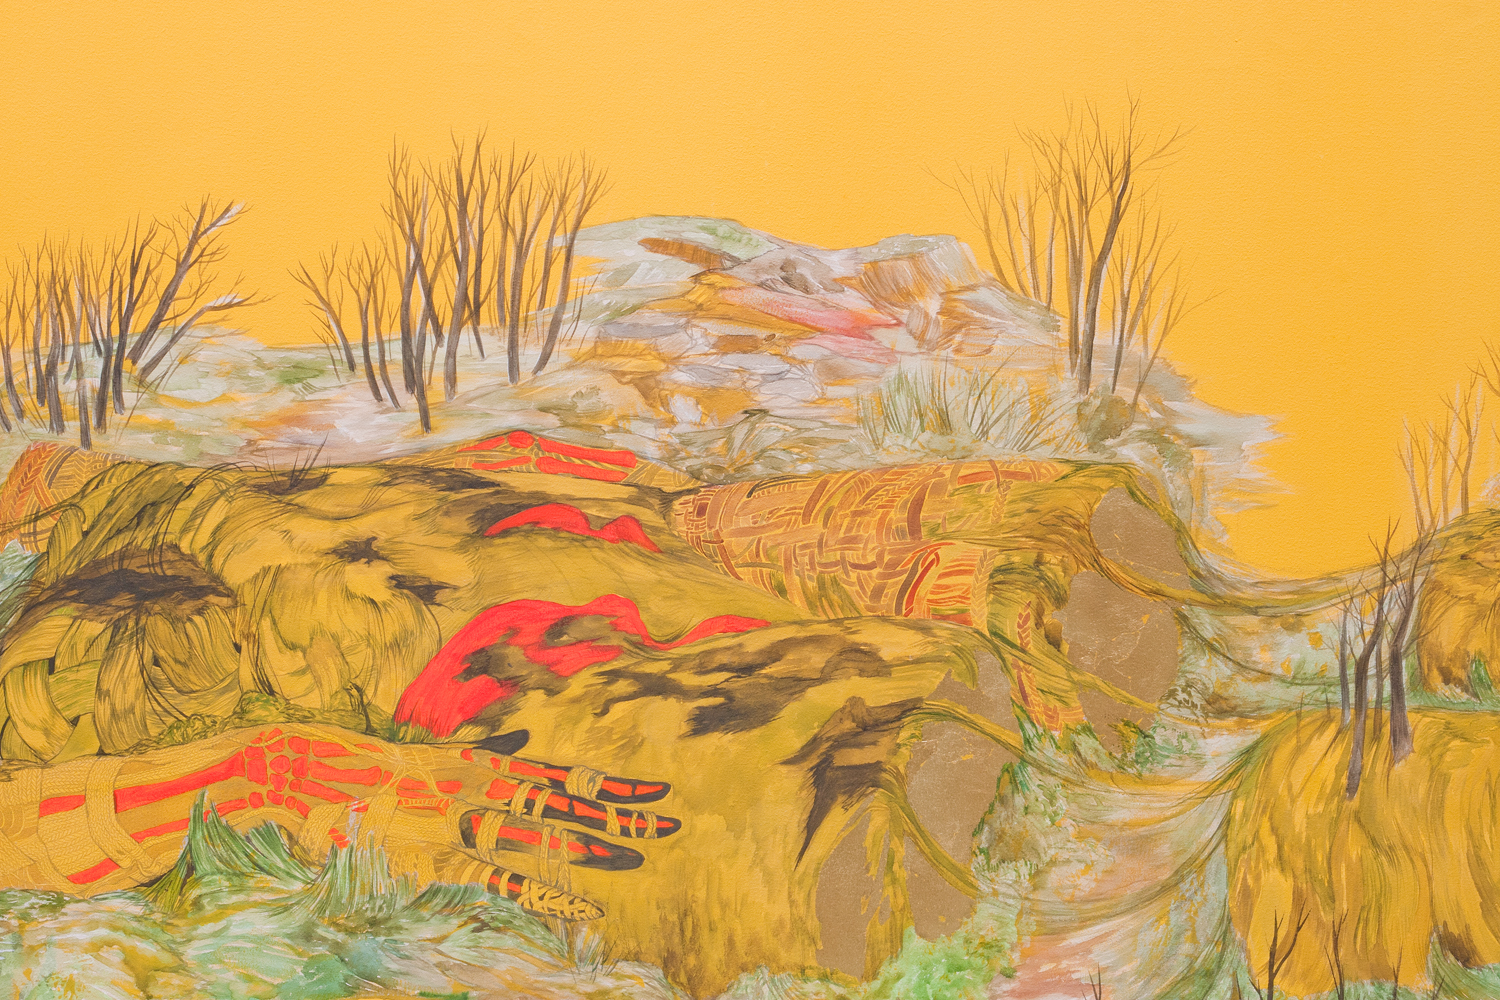 Re-grounding   , 2011, 108 x 179 inches. Watercolor, acrylic, phosphorescent paint, pigment, gold leaf on canvas.     AVAILABLE